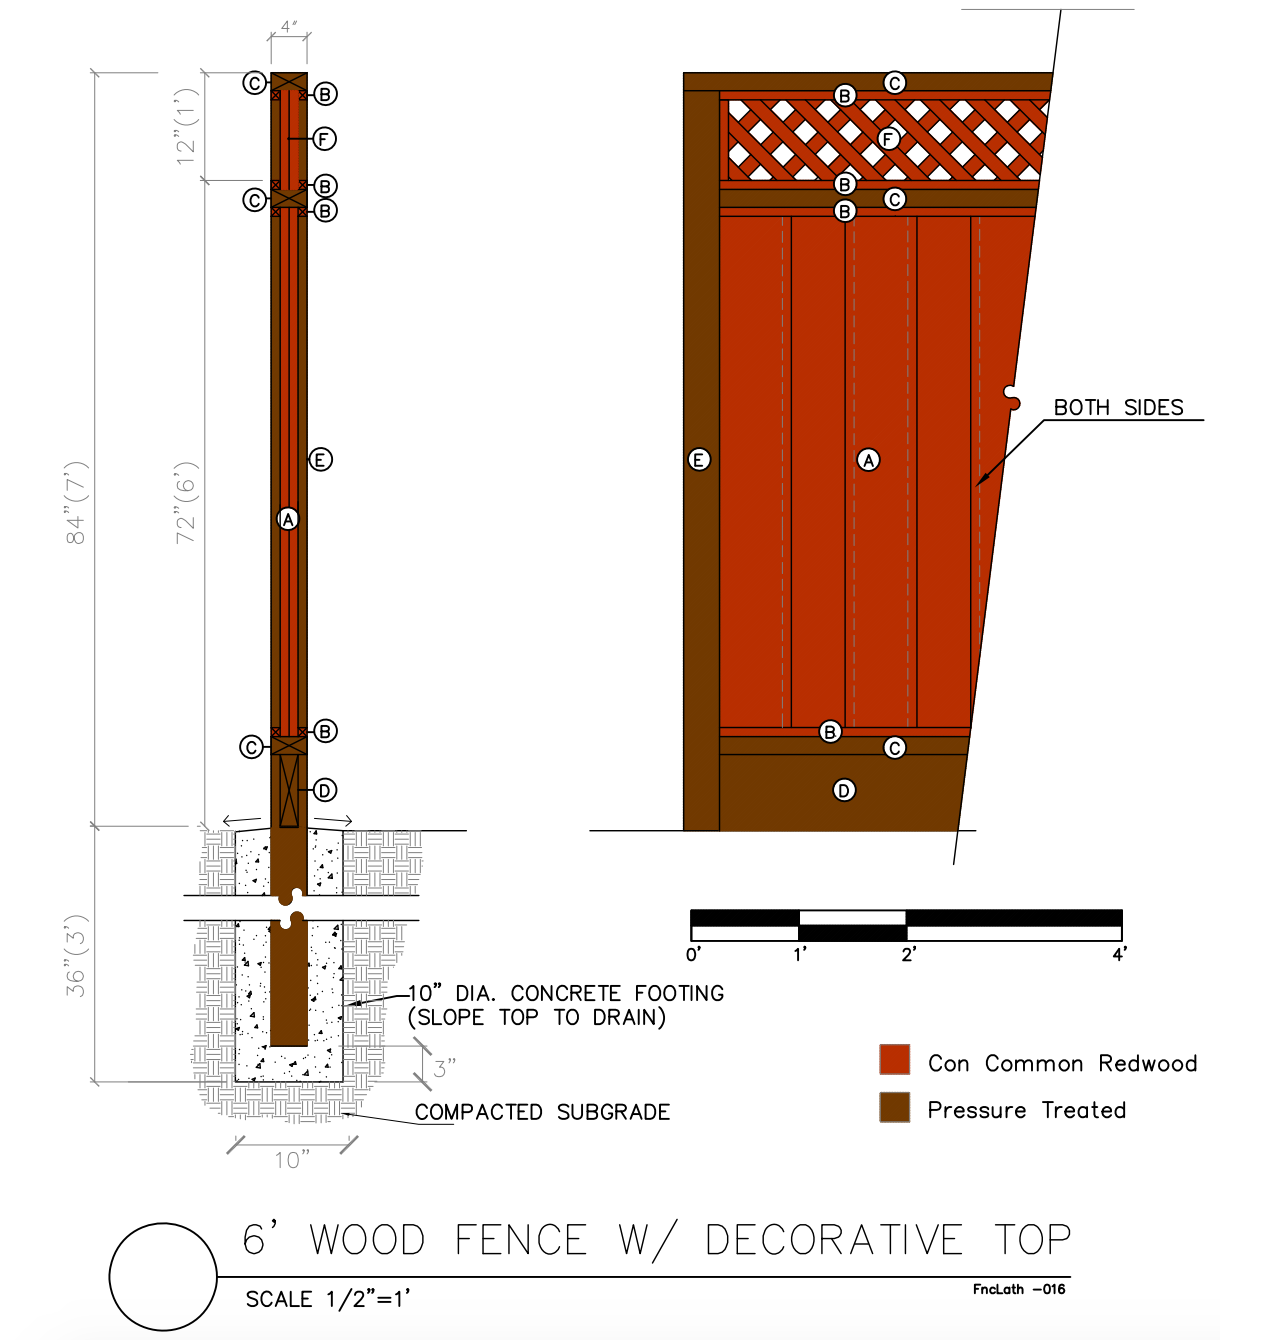 6' Wood fence with decorative top